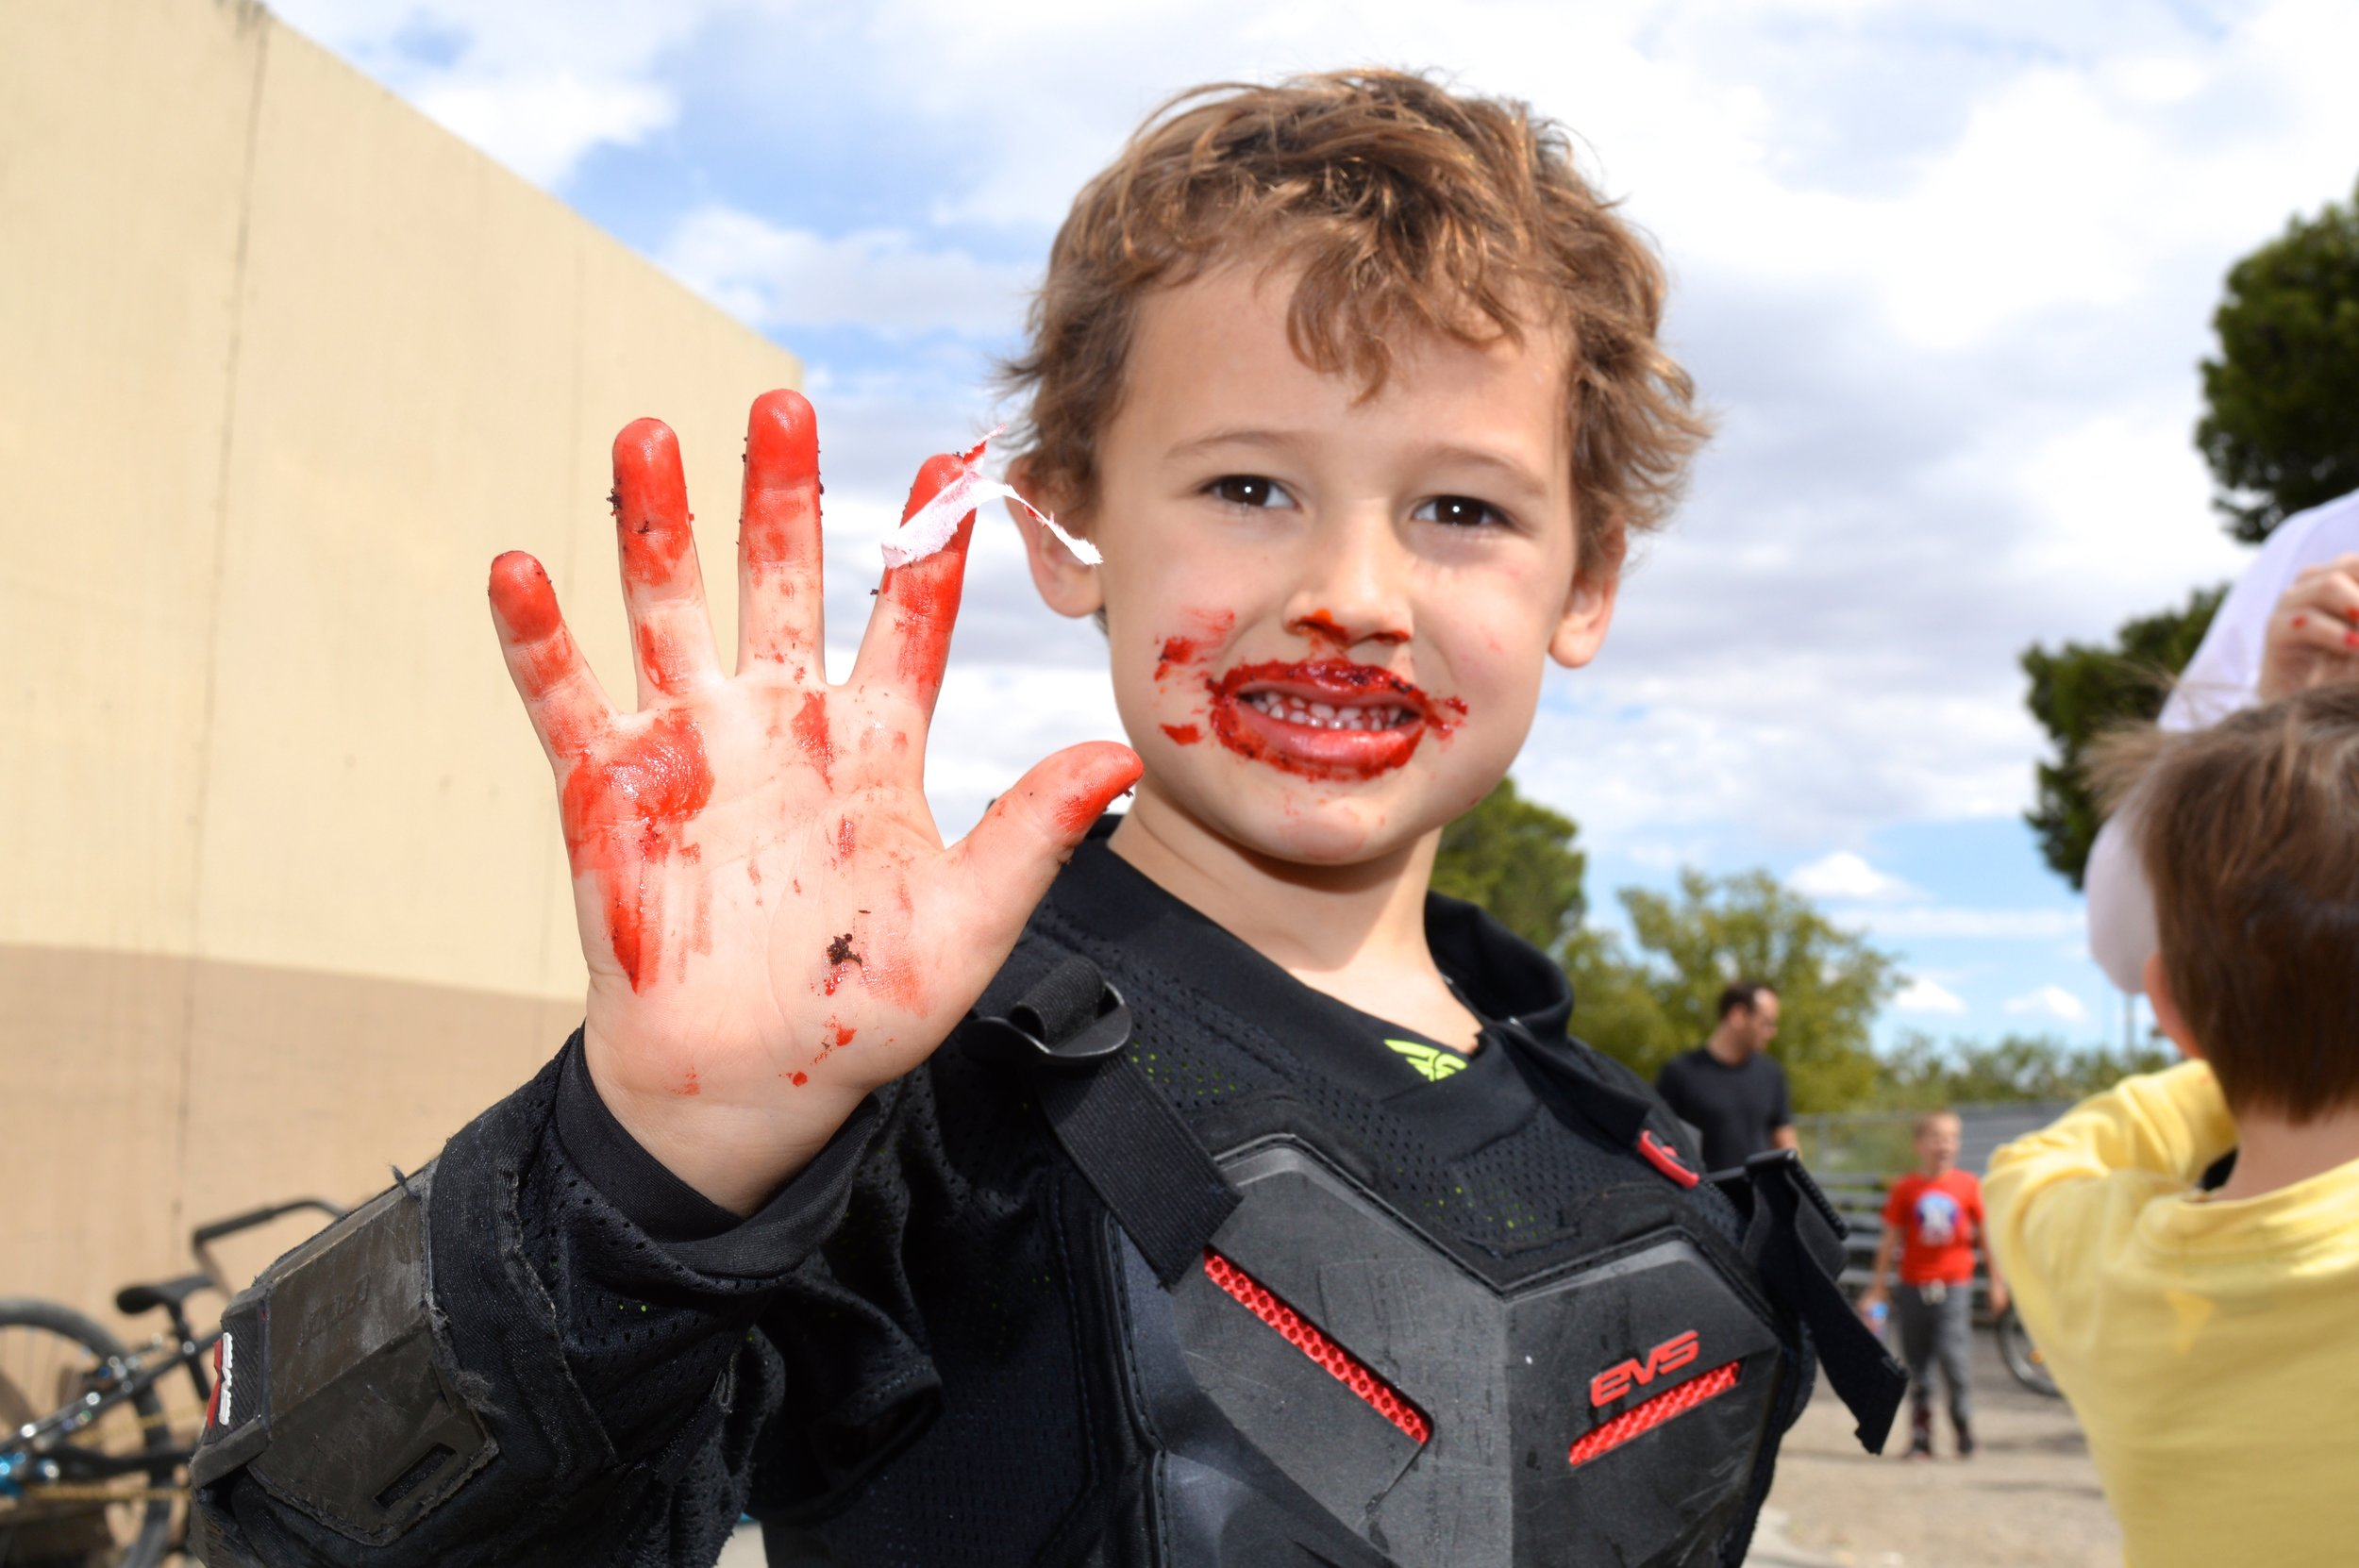 Holding up his age in fingers, a full-hand now! Covered in red cupcake icing, of course.